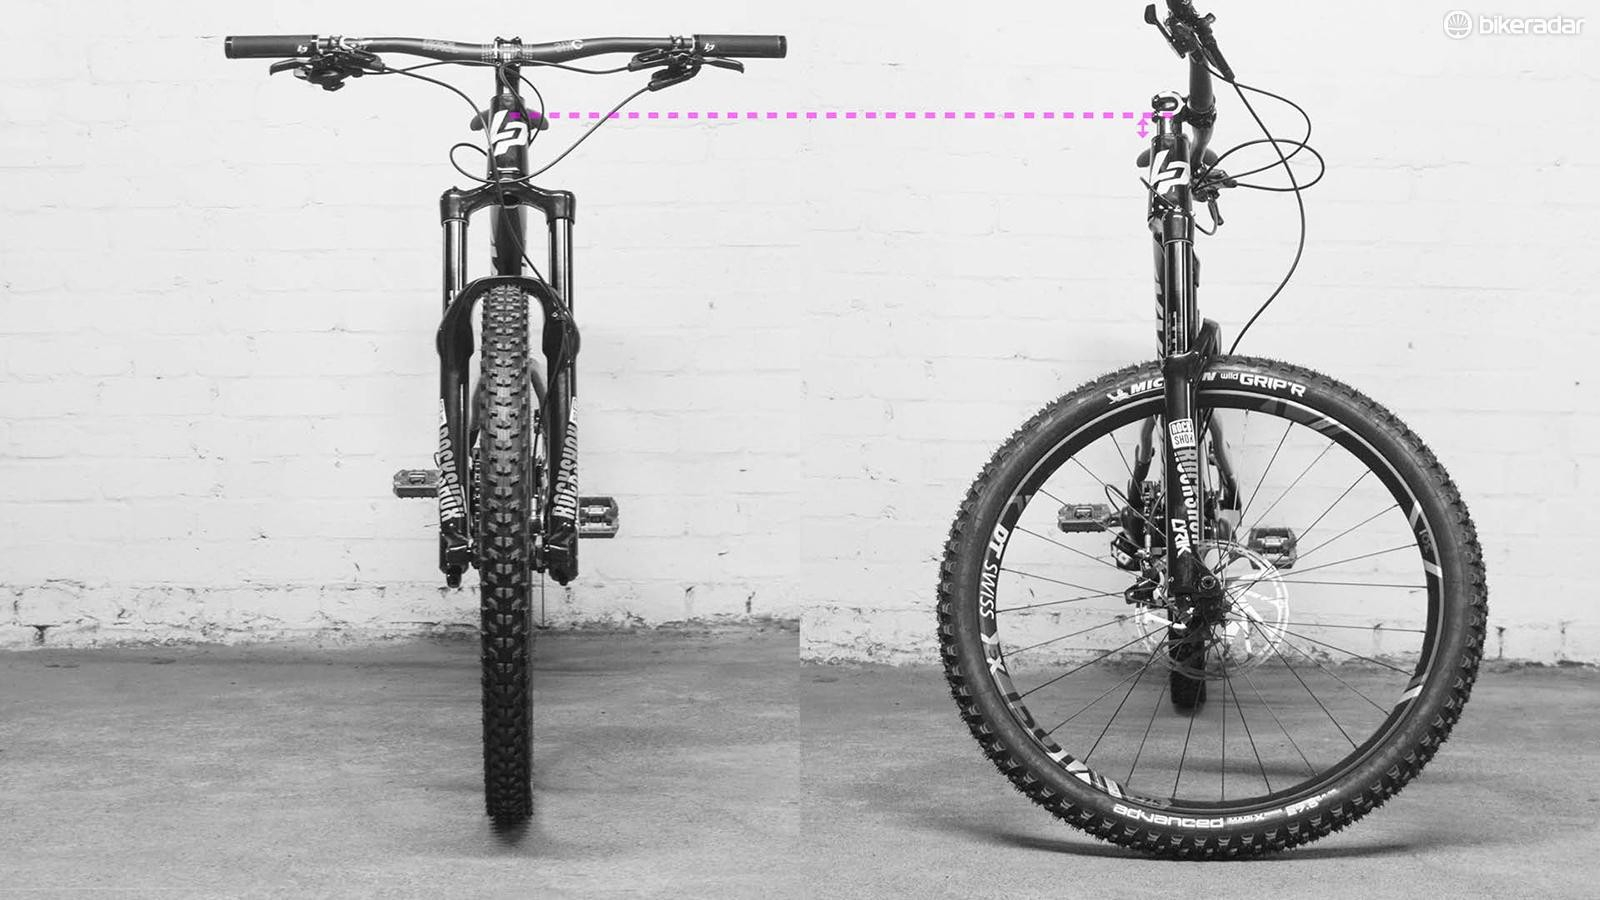 As the steering angle is turned away from straight ahead, the frame drops. The rider's weight therefore creates a force acting to turn the handlebars away from straight, known as flop